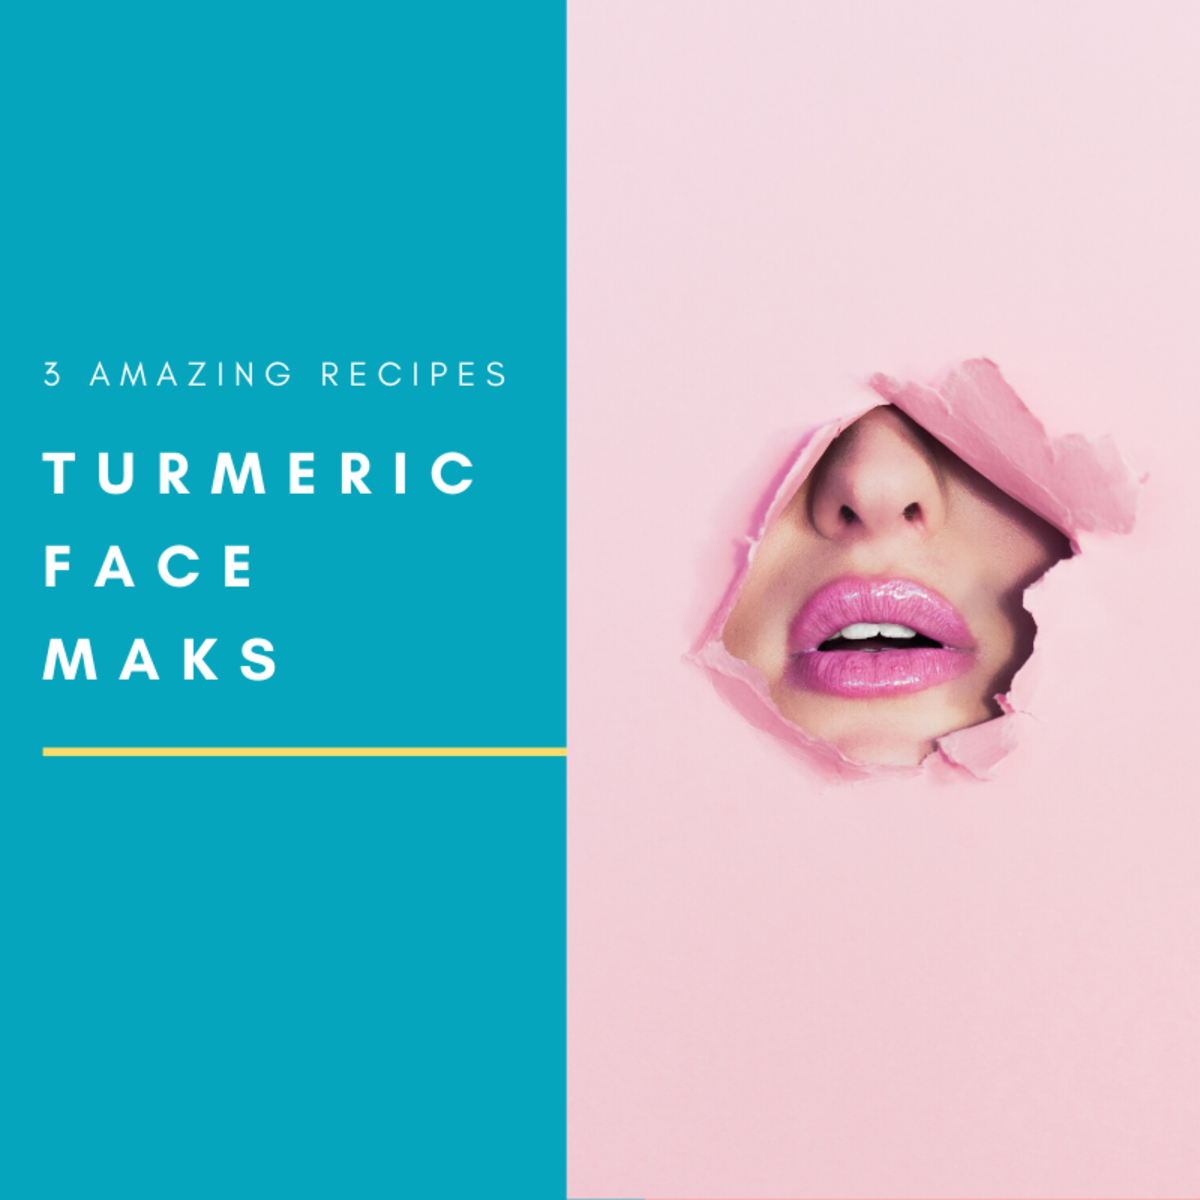 Turmeric is an all-natural skincare ingredient that can be applied topically for glowing skin!